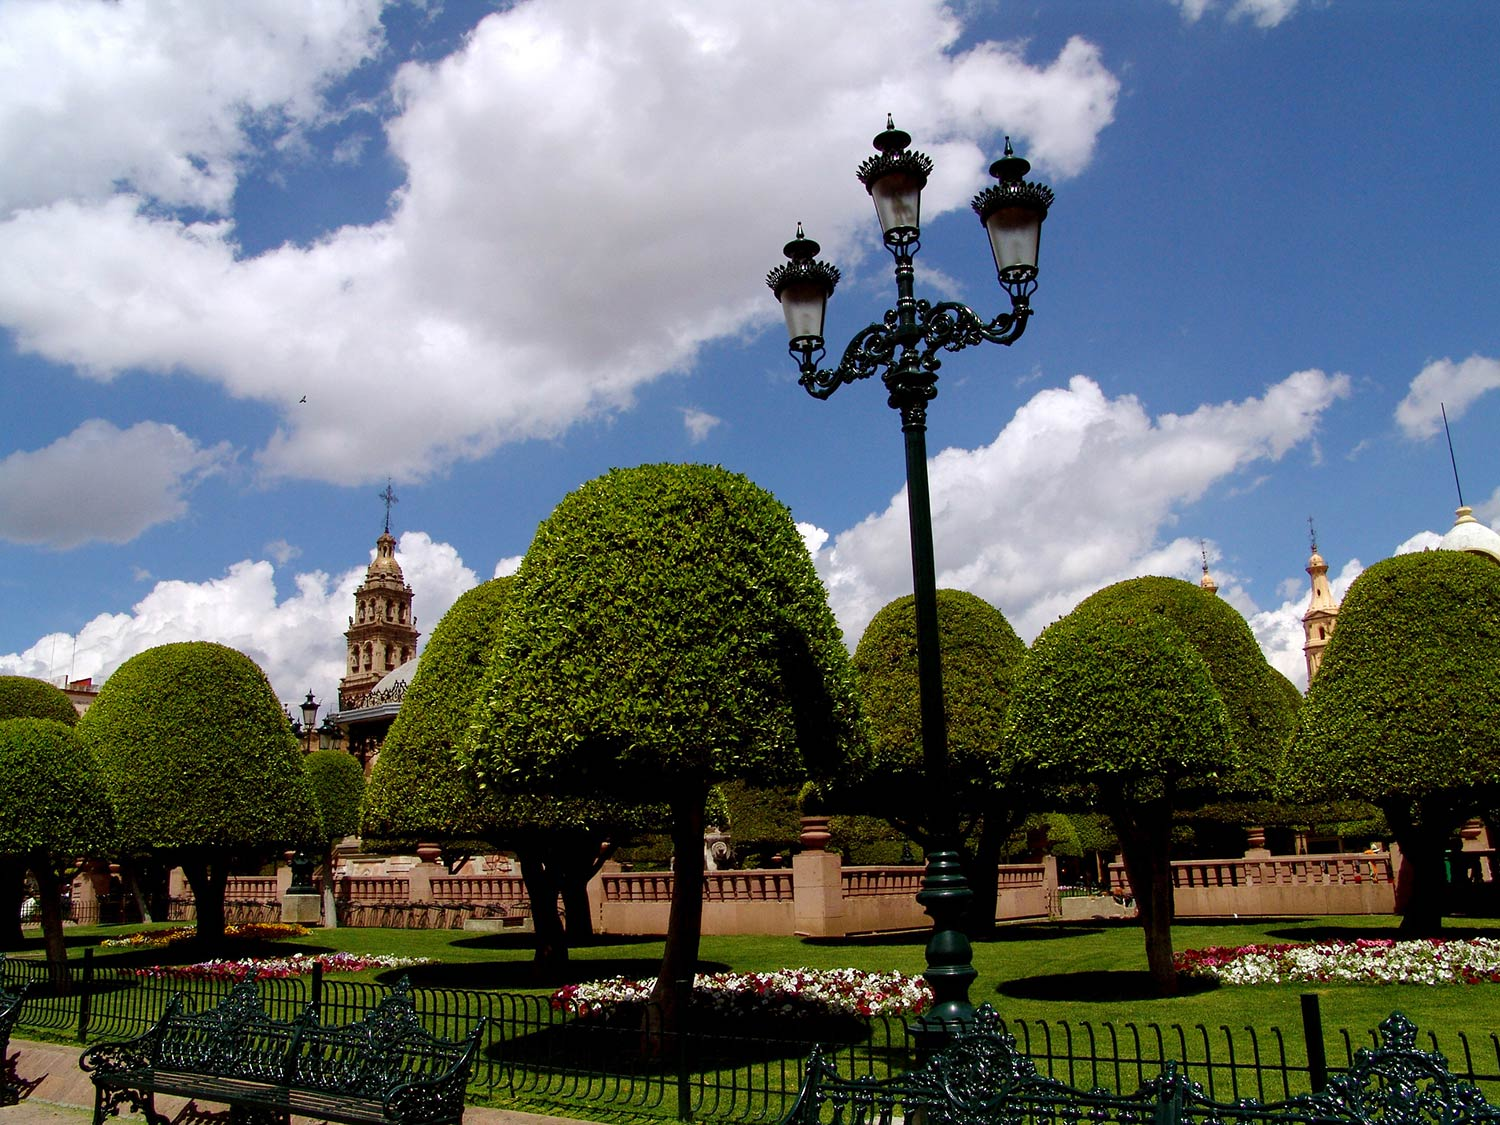 One black lamppost stands out against a line of green trees on a sunny day in Leon